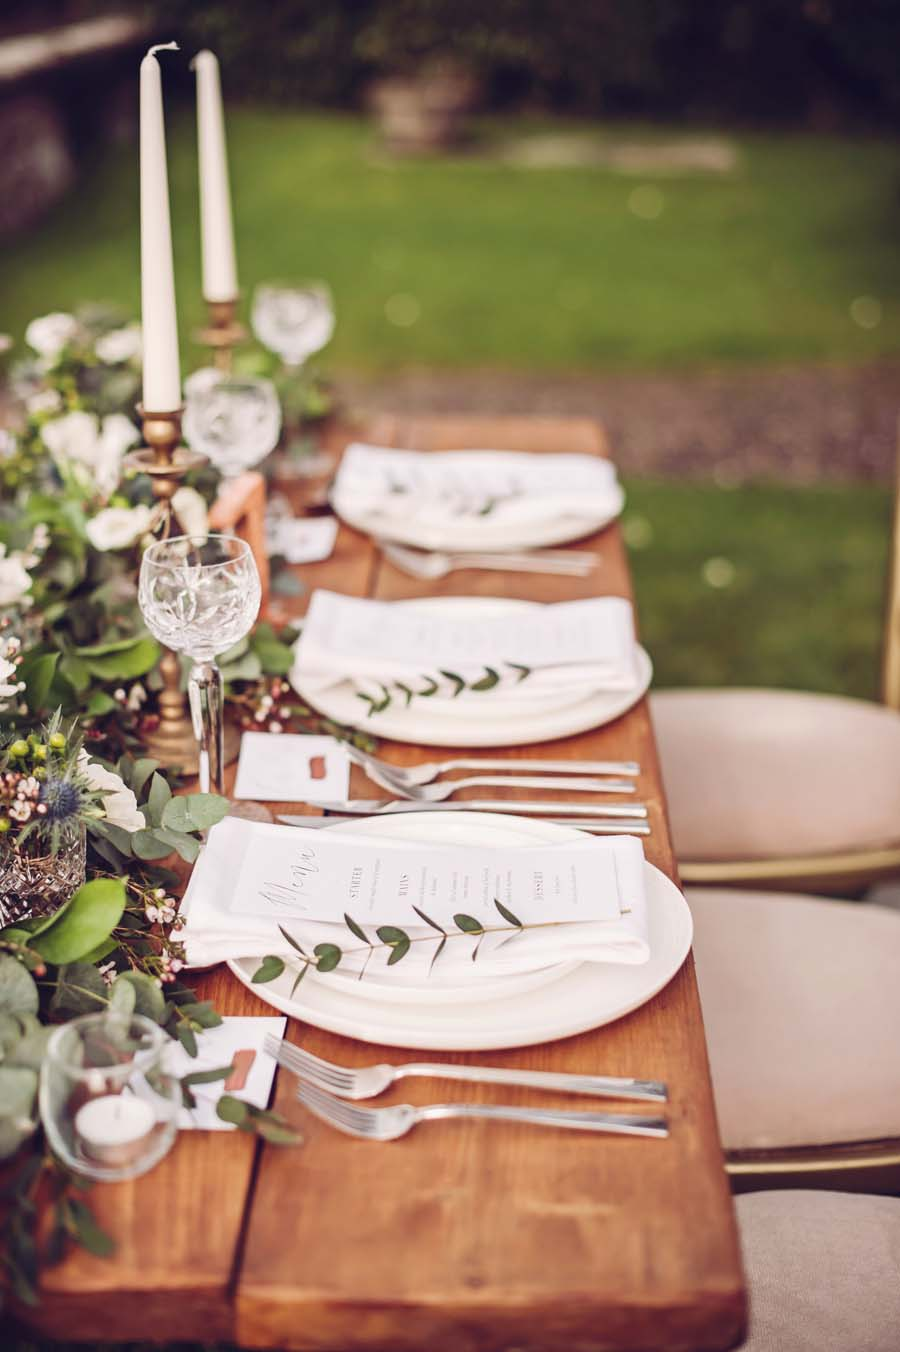 The Perfect Romantic Rustic-Glam Tablescape by Linen & Lace!